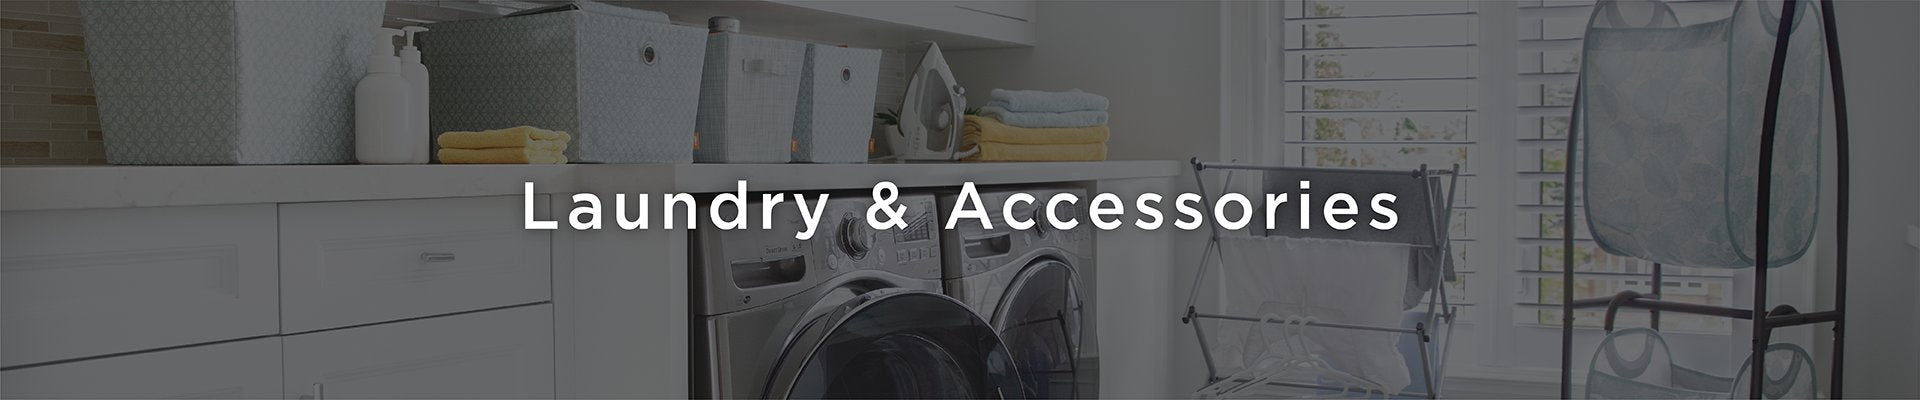 Laundry Storage & Accessories